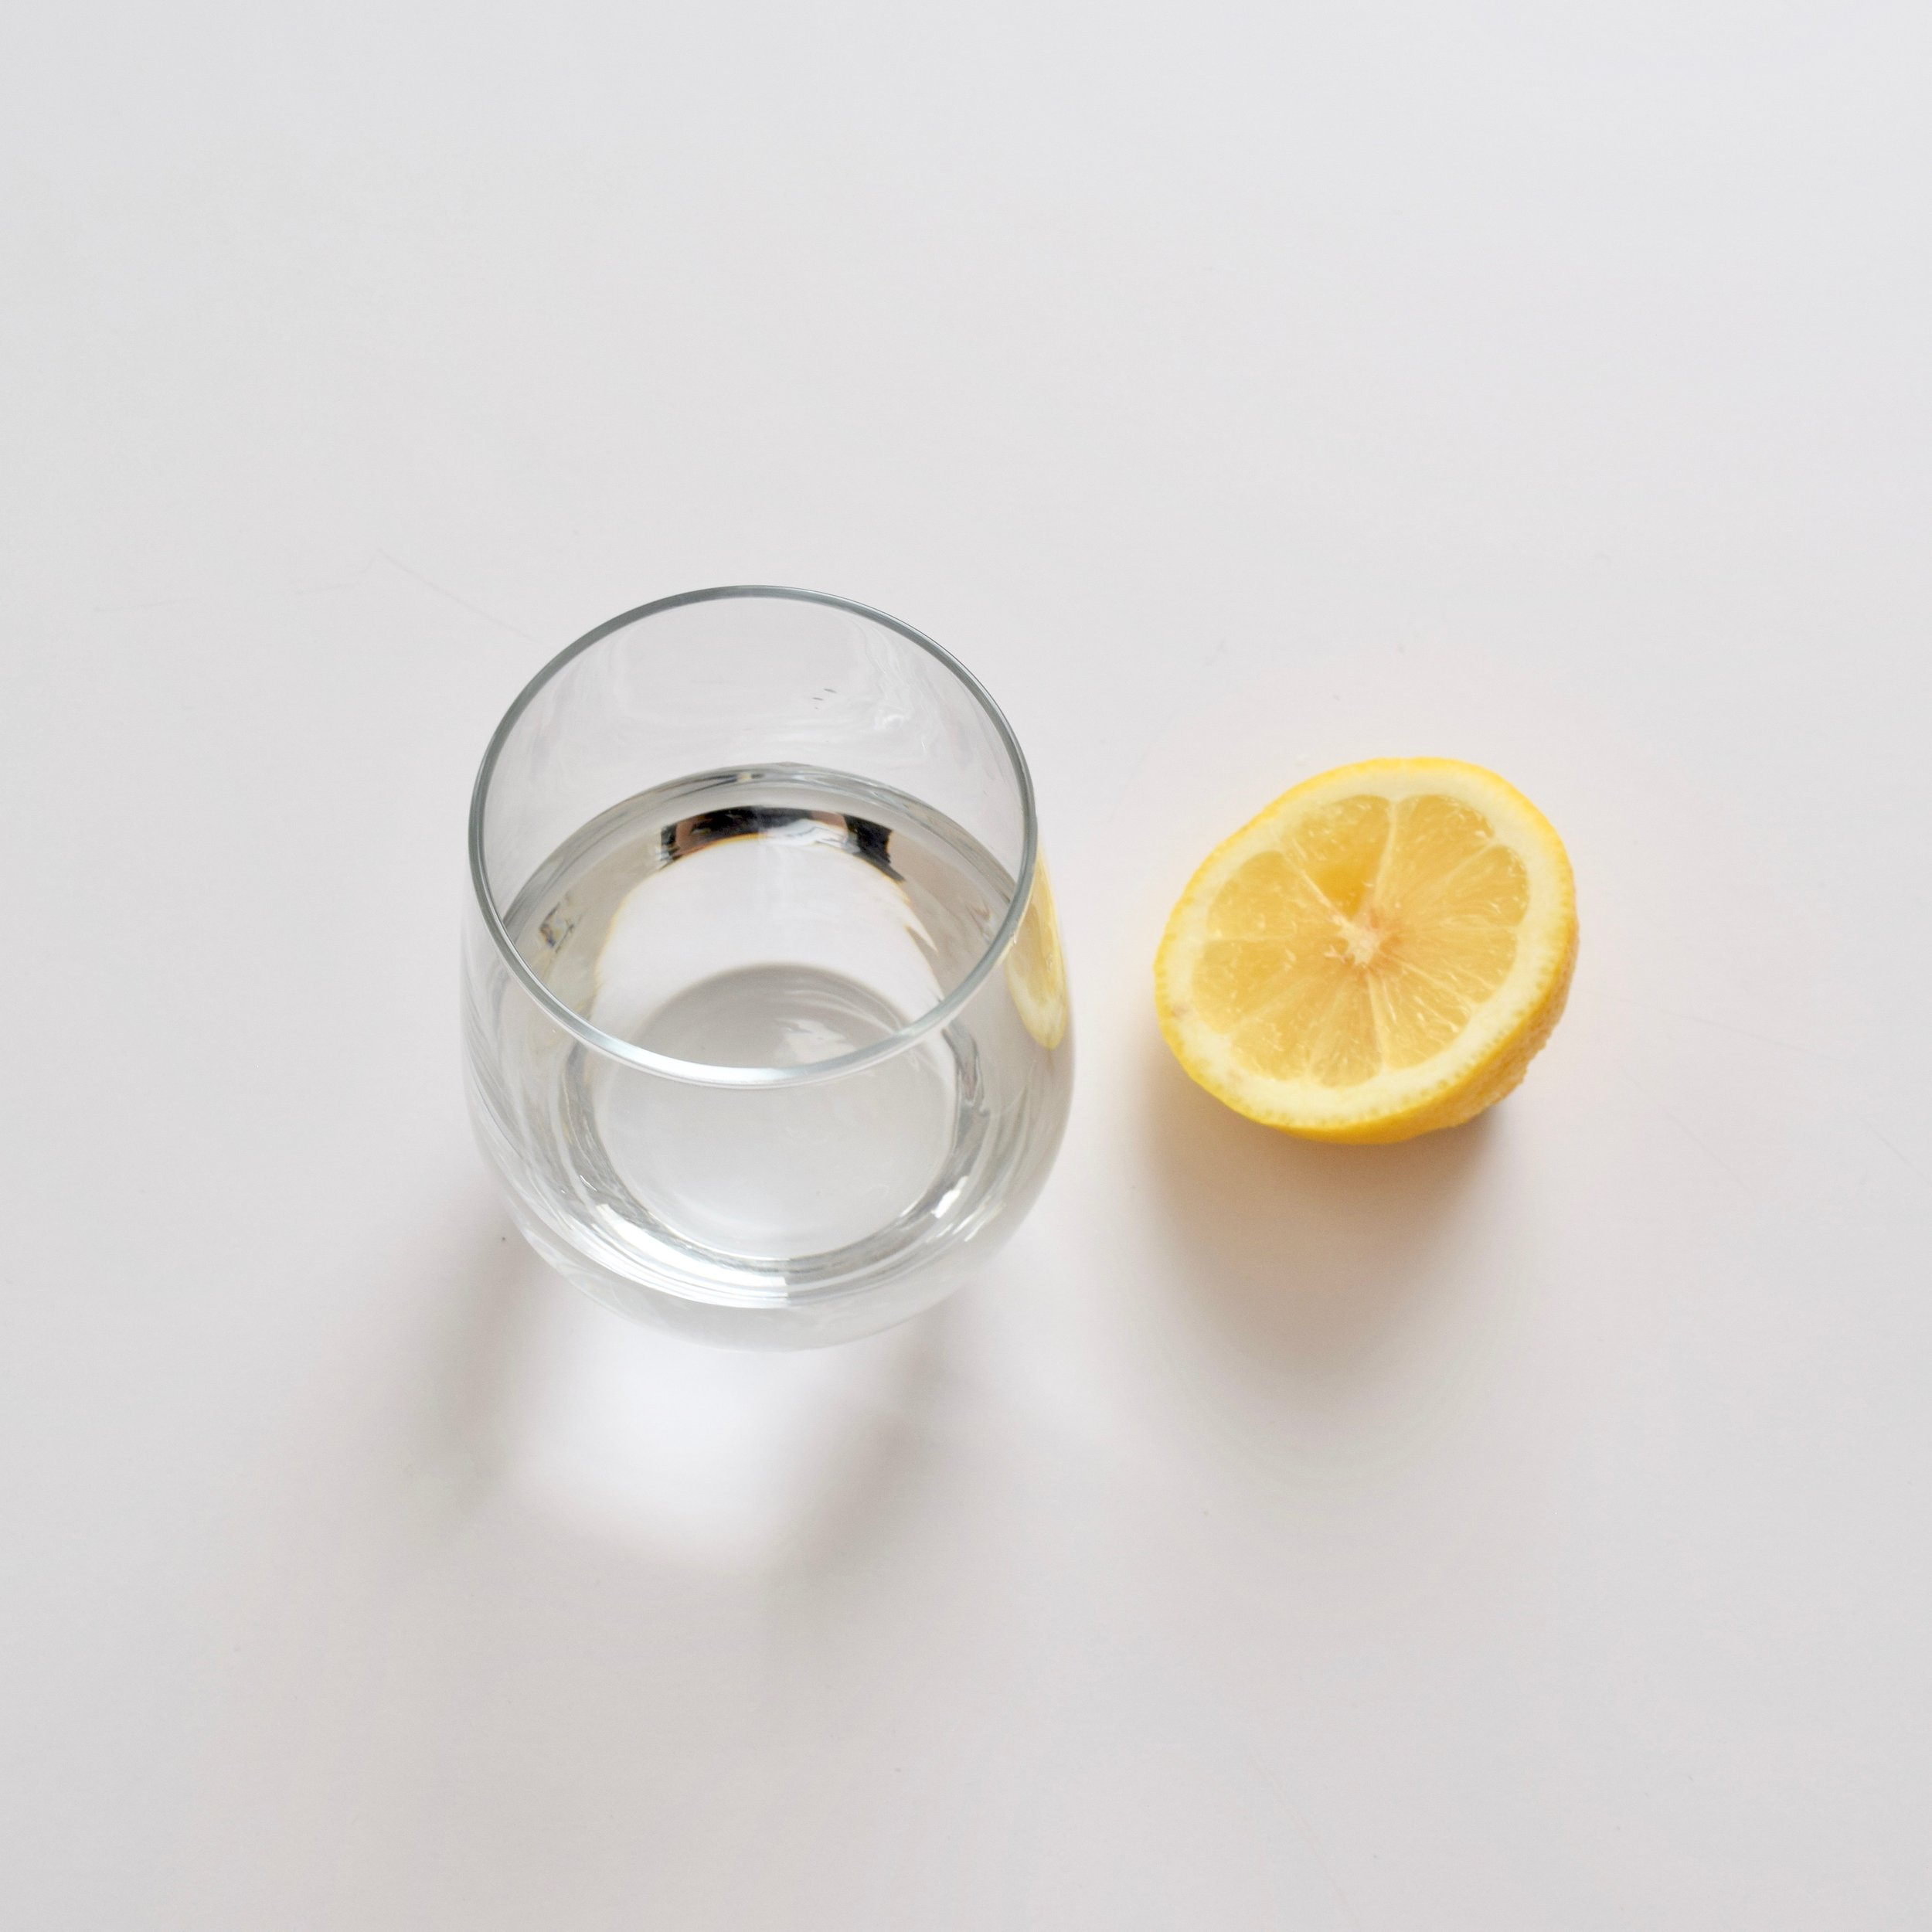 Step 1: Fill a cup with some warm water and add a squeeze of lemon juice.